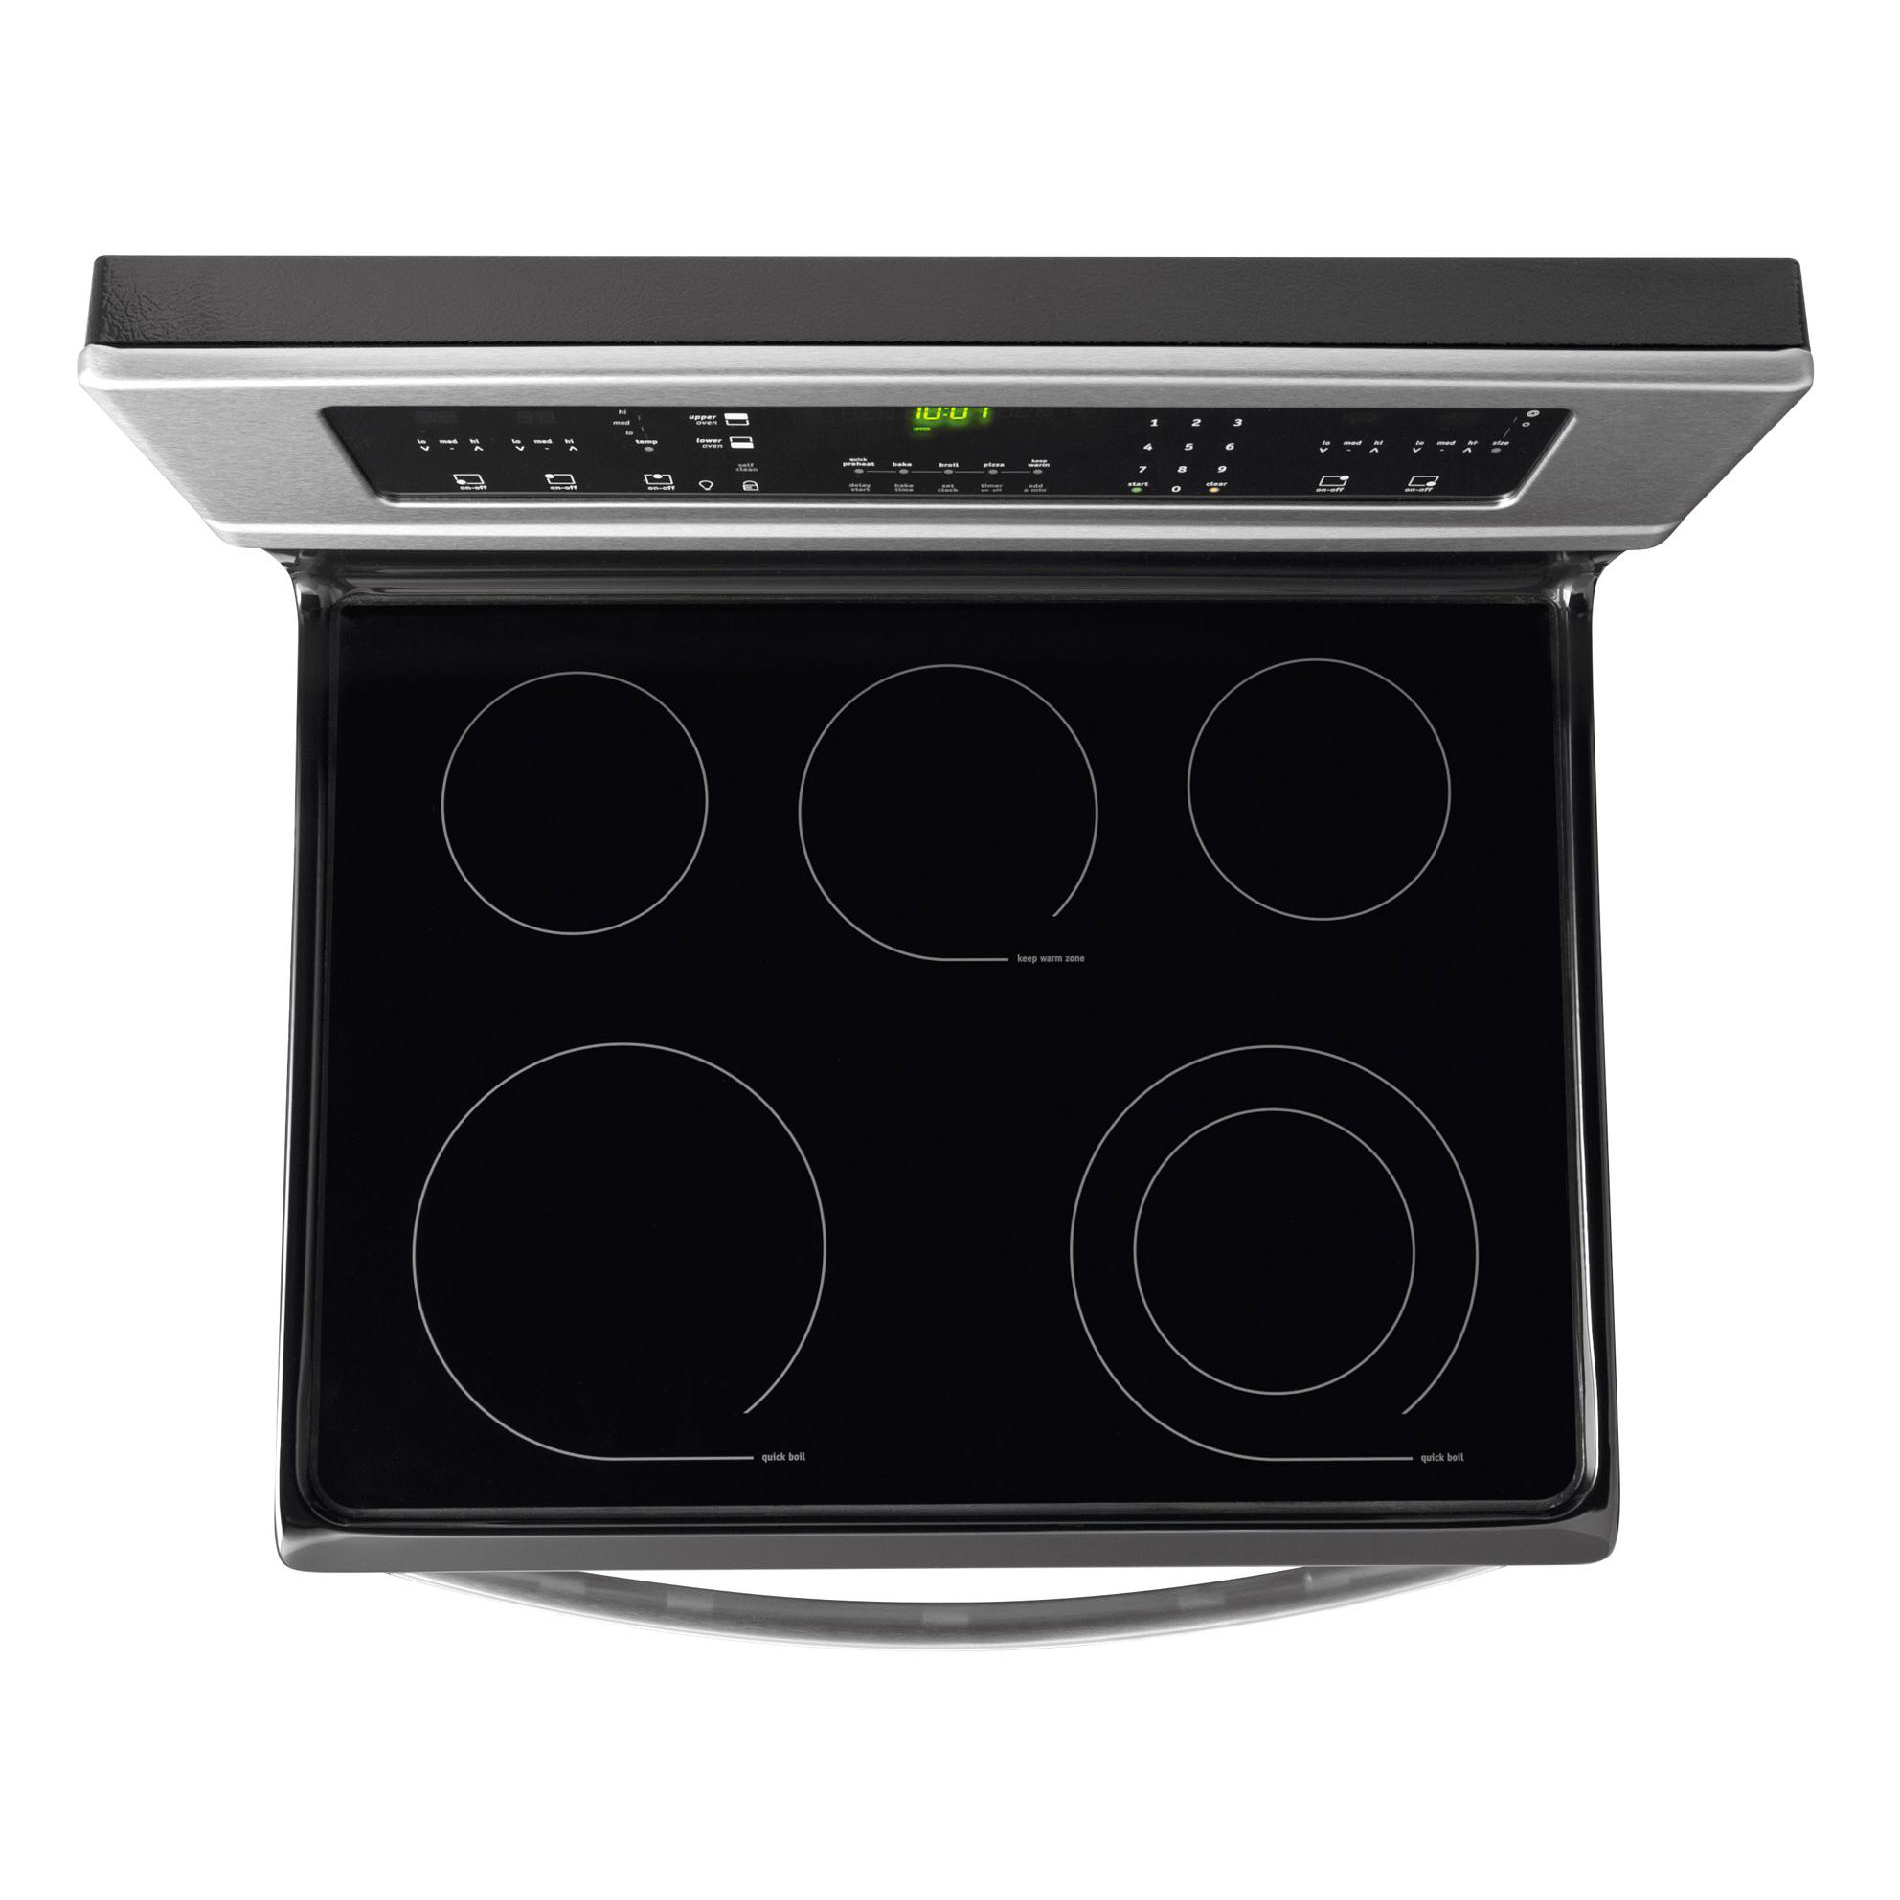 Frigidaire Gallery 7 cu. ft. Double-Oven Electric Range - Stainless Steel